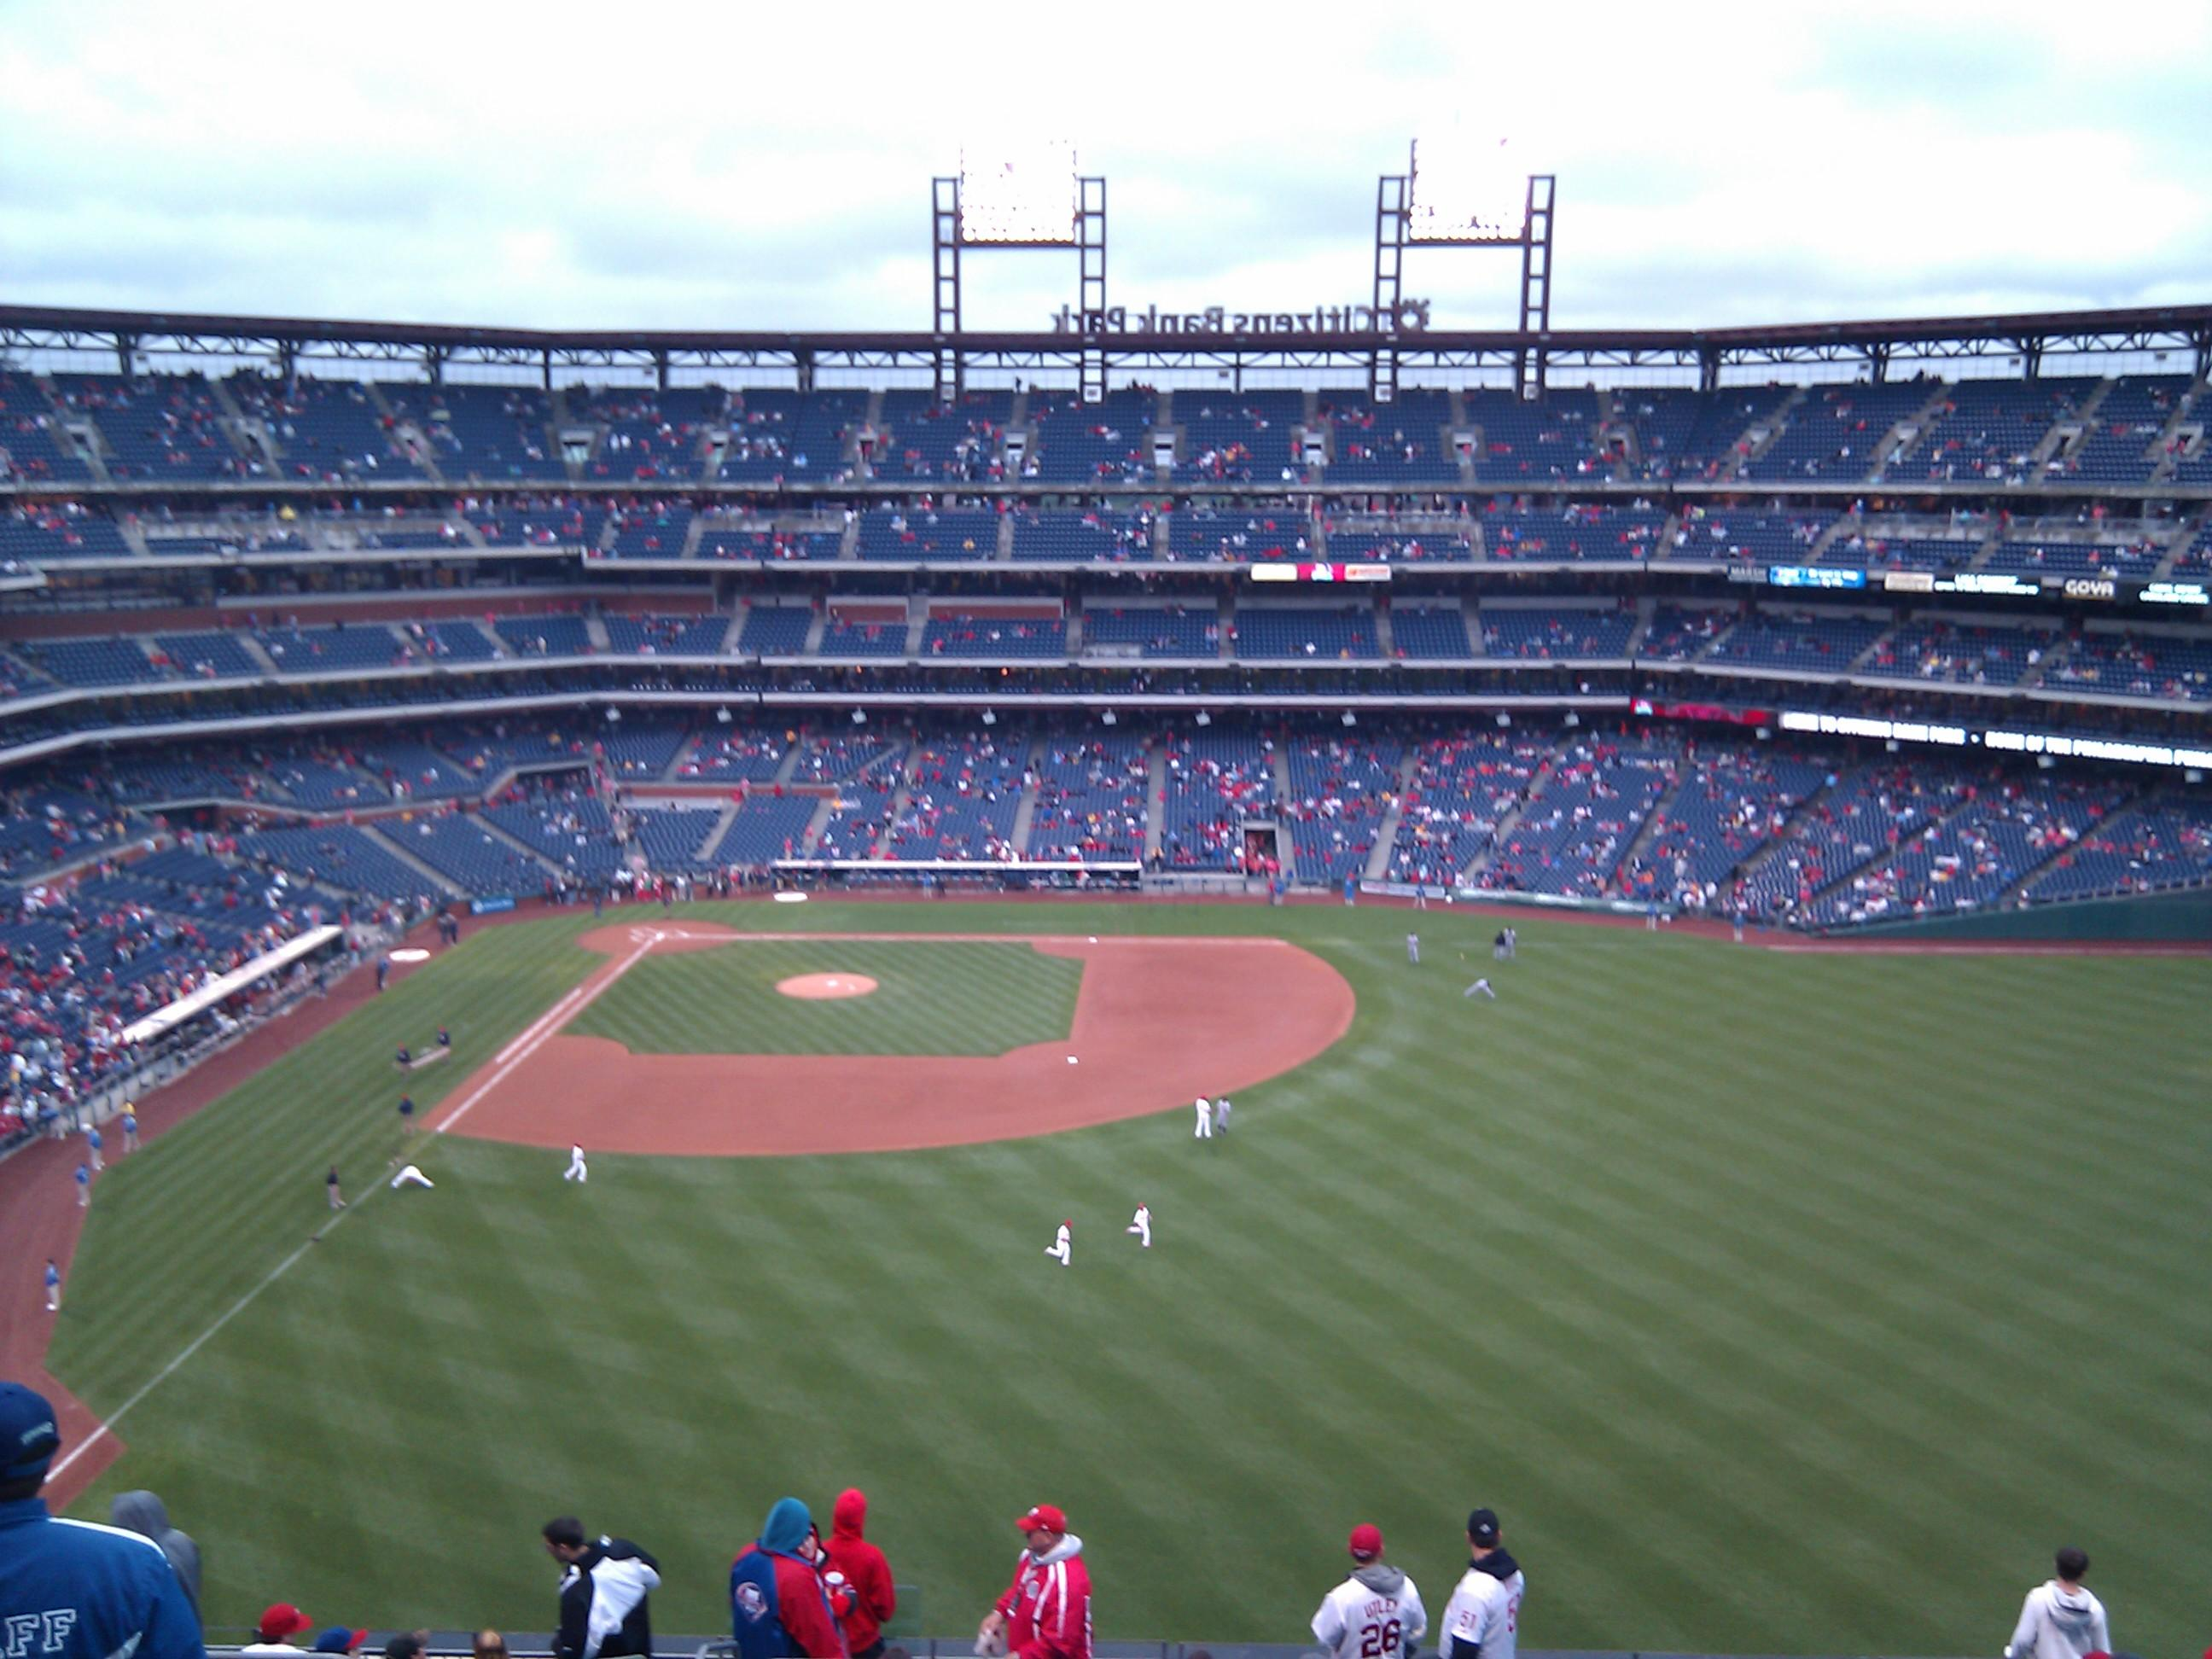 Citizens Bank Park Section 302 Row 15 Seat 20